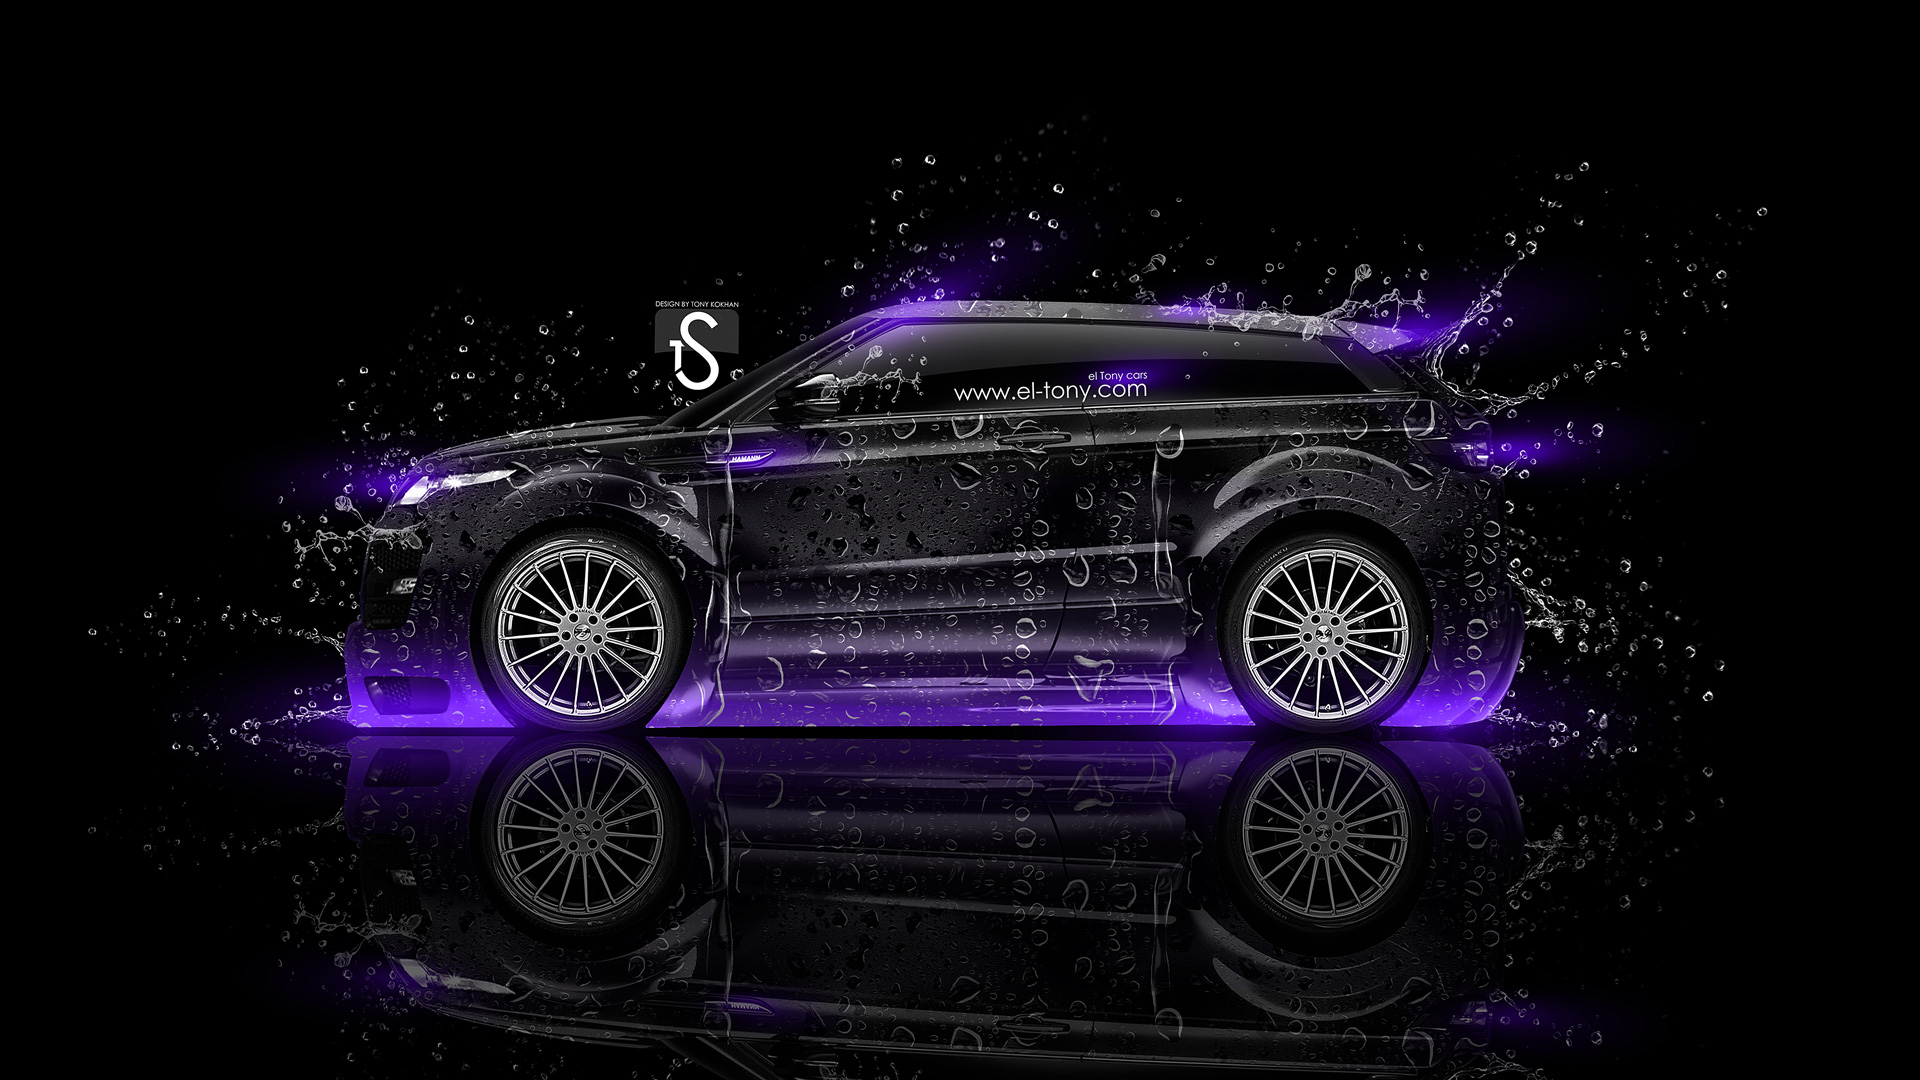 Land Rover Evoque Water Car 2014 Violet Neon